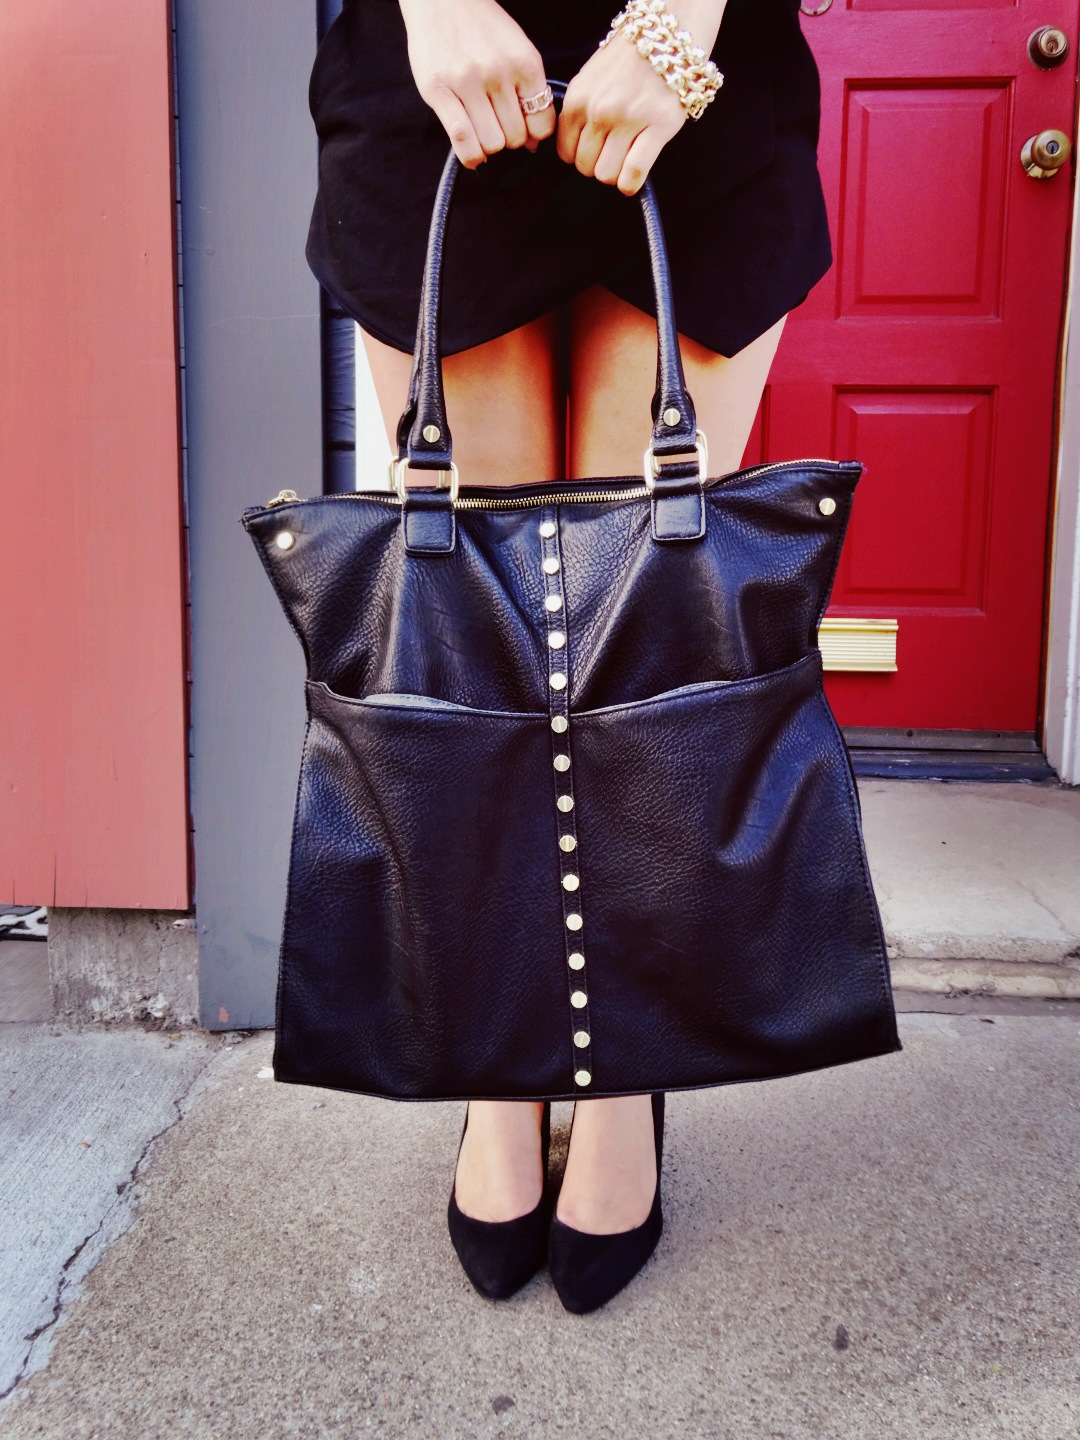 Bag: Olivia + Joy via Macy's